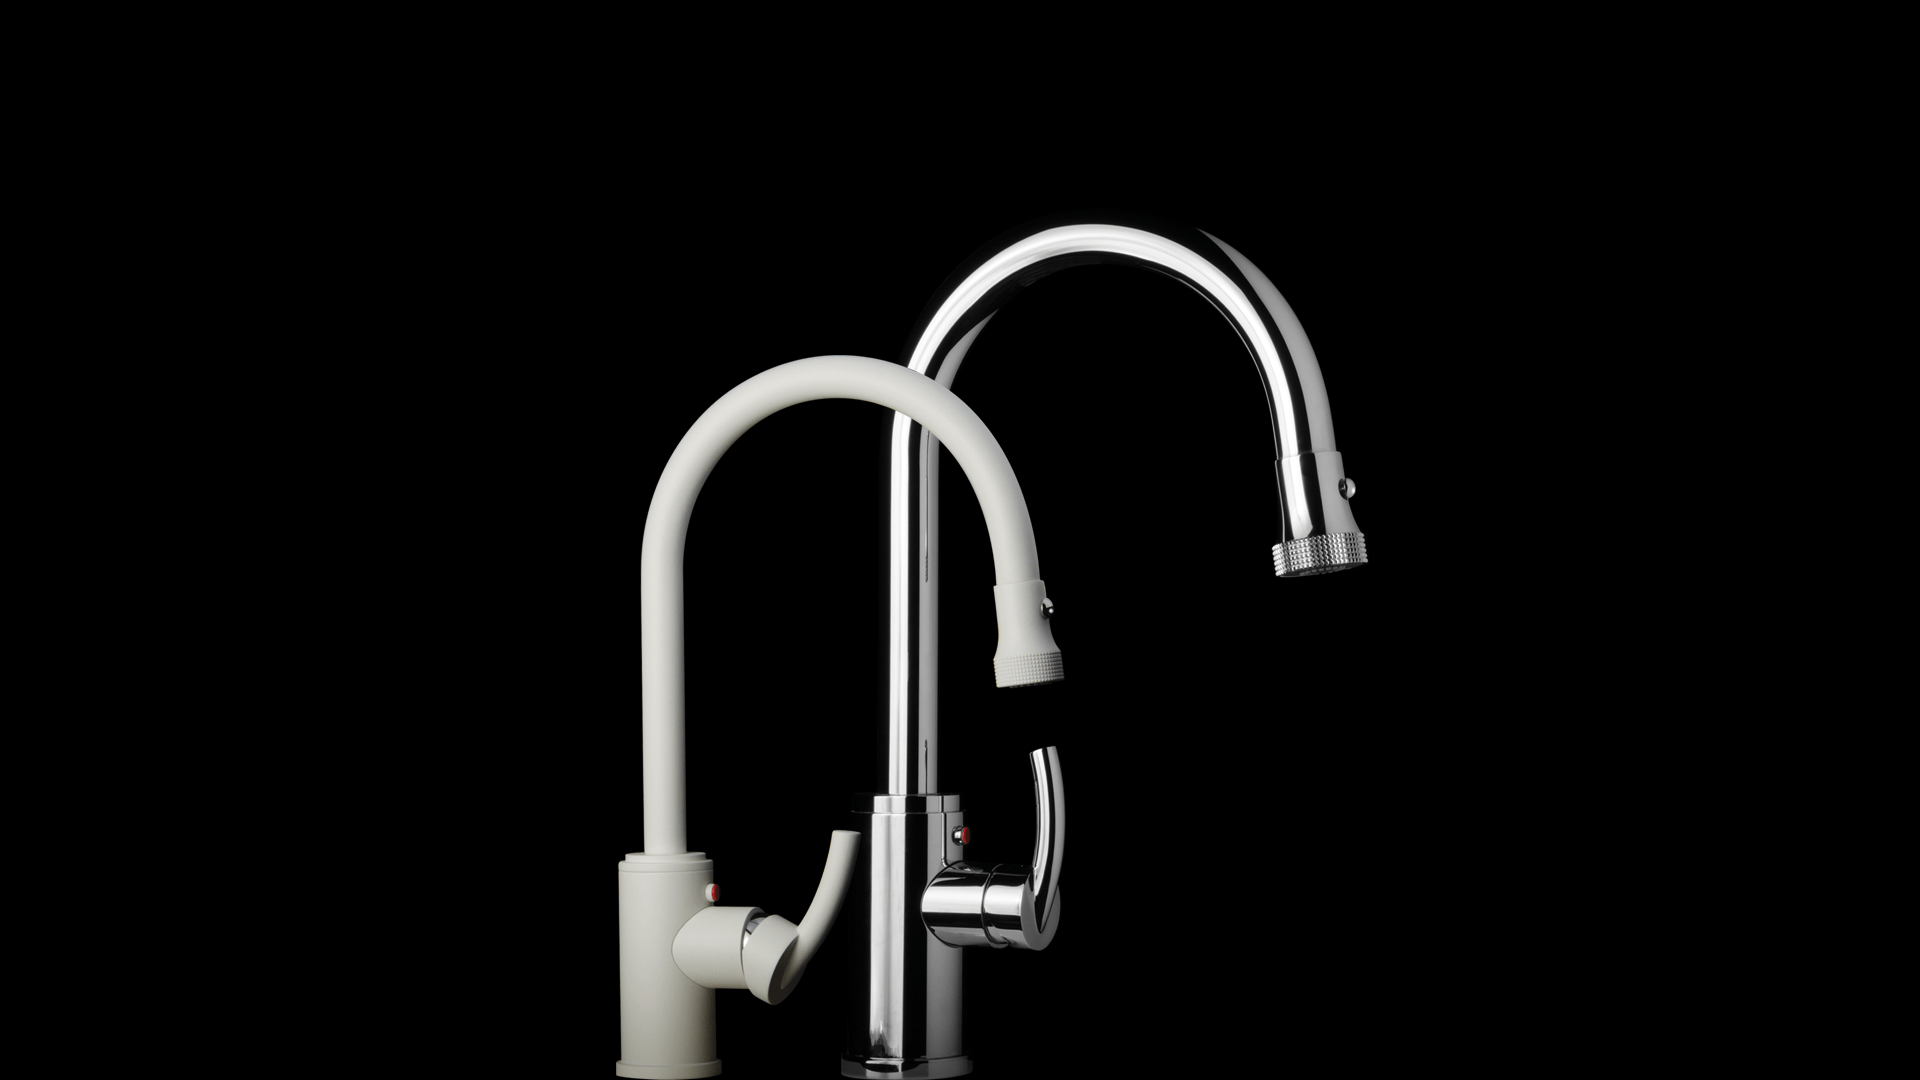 Manufacturer Factory Faucets The Rubinet Faucet Company